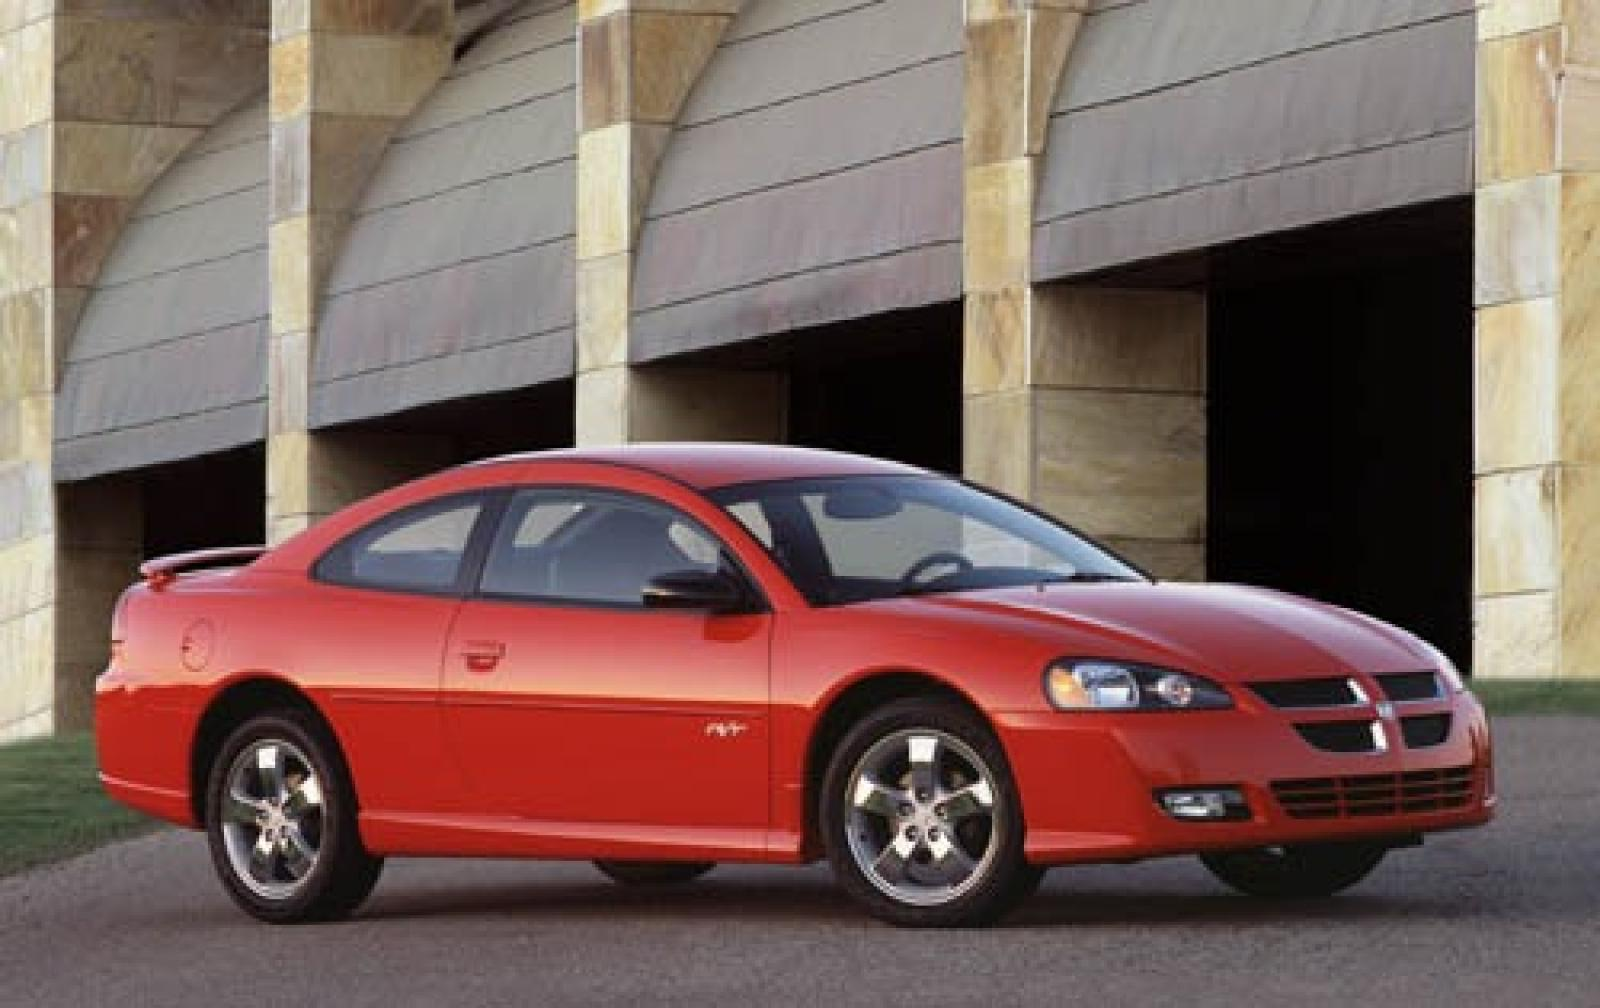 2004 Dodge Stratus Information And Photos Zombiedrive